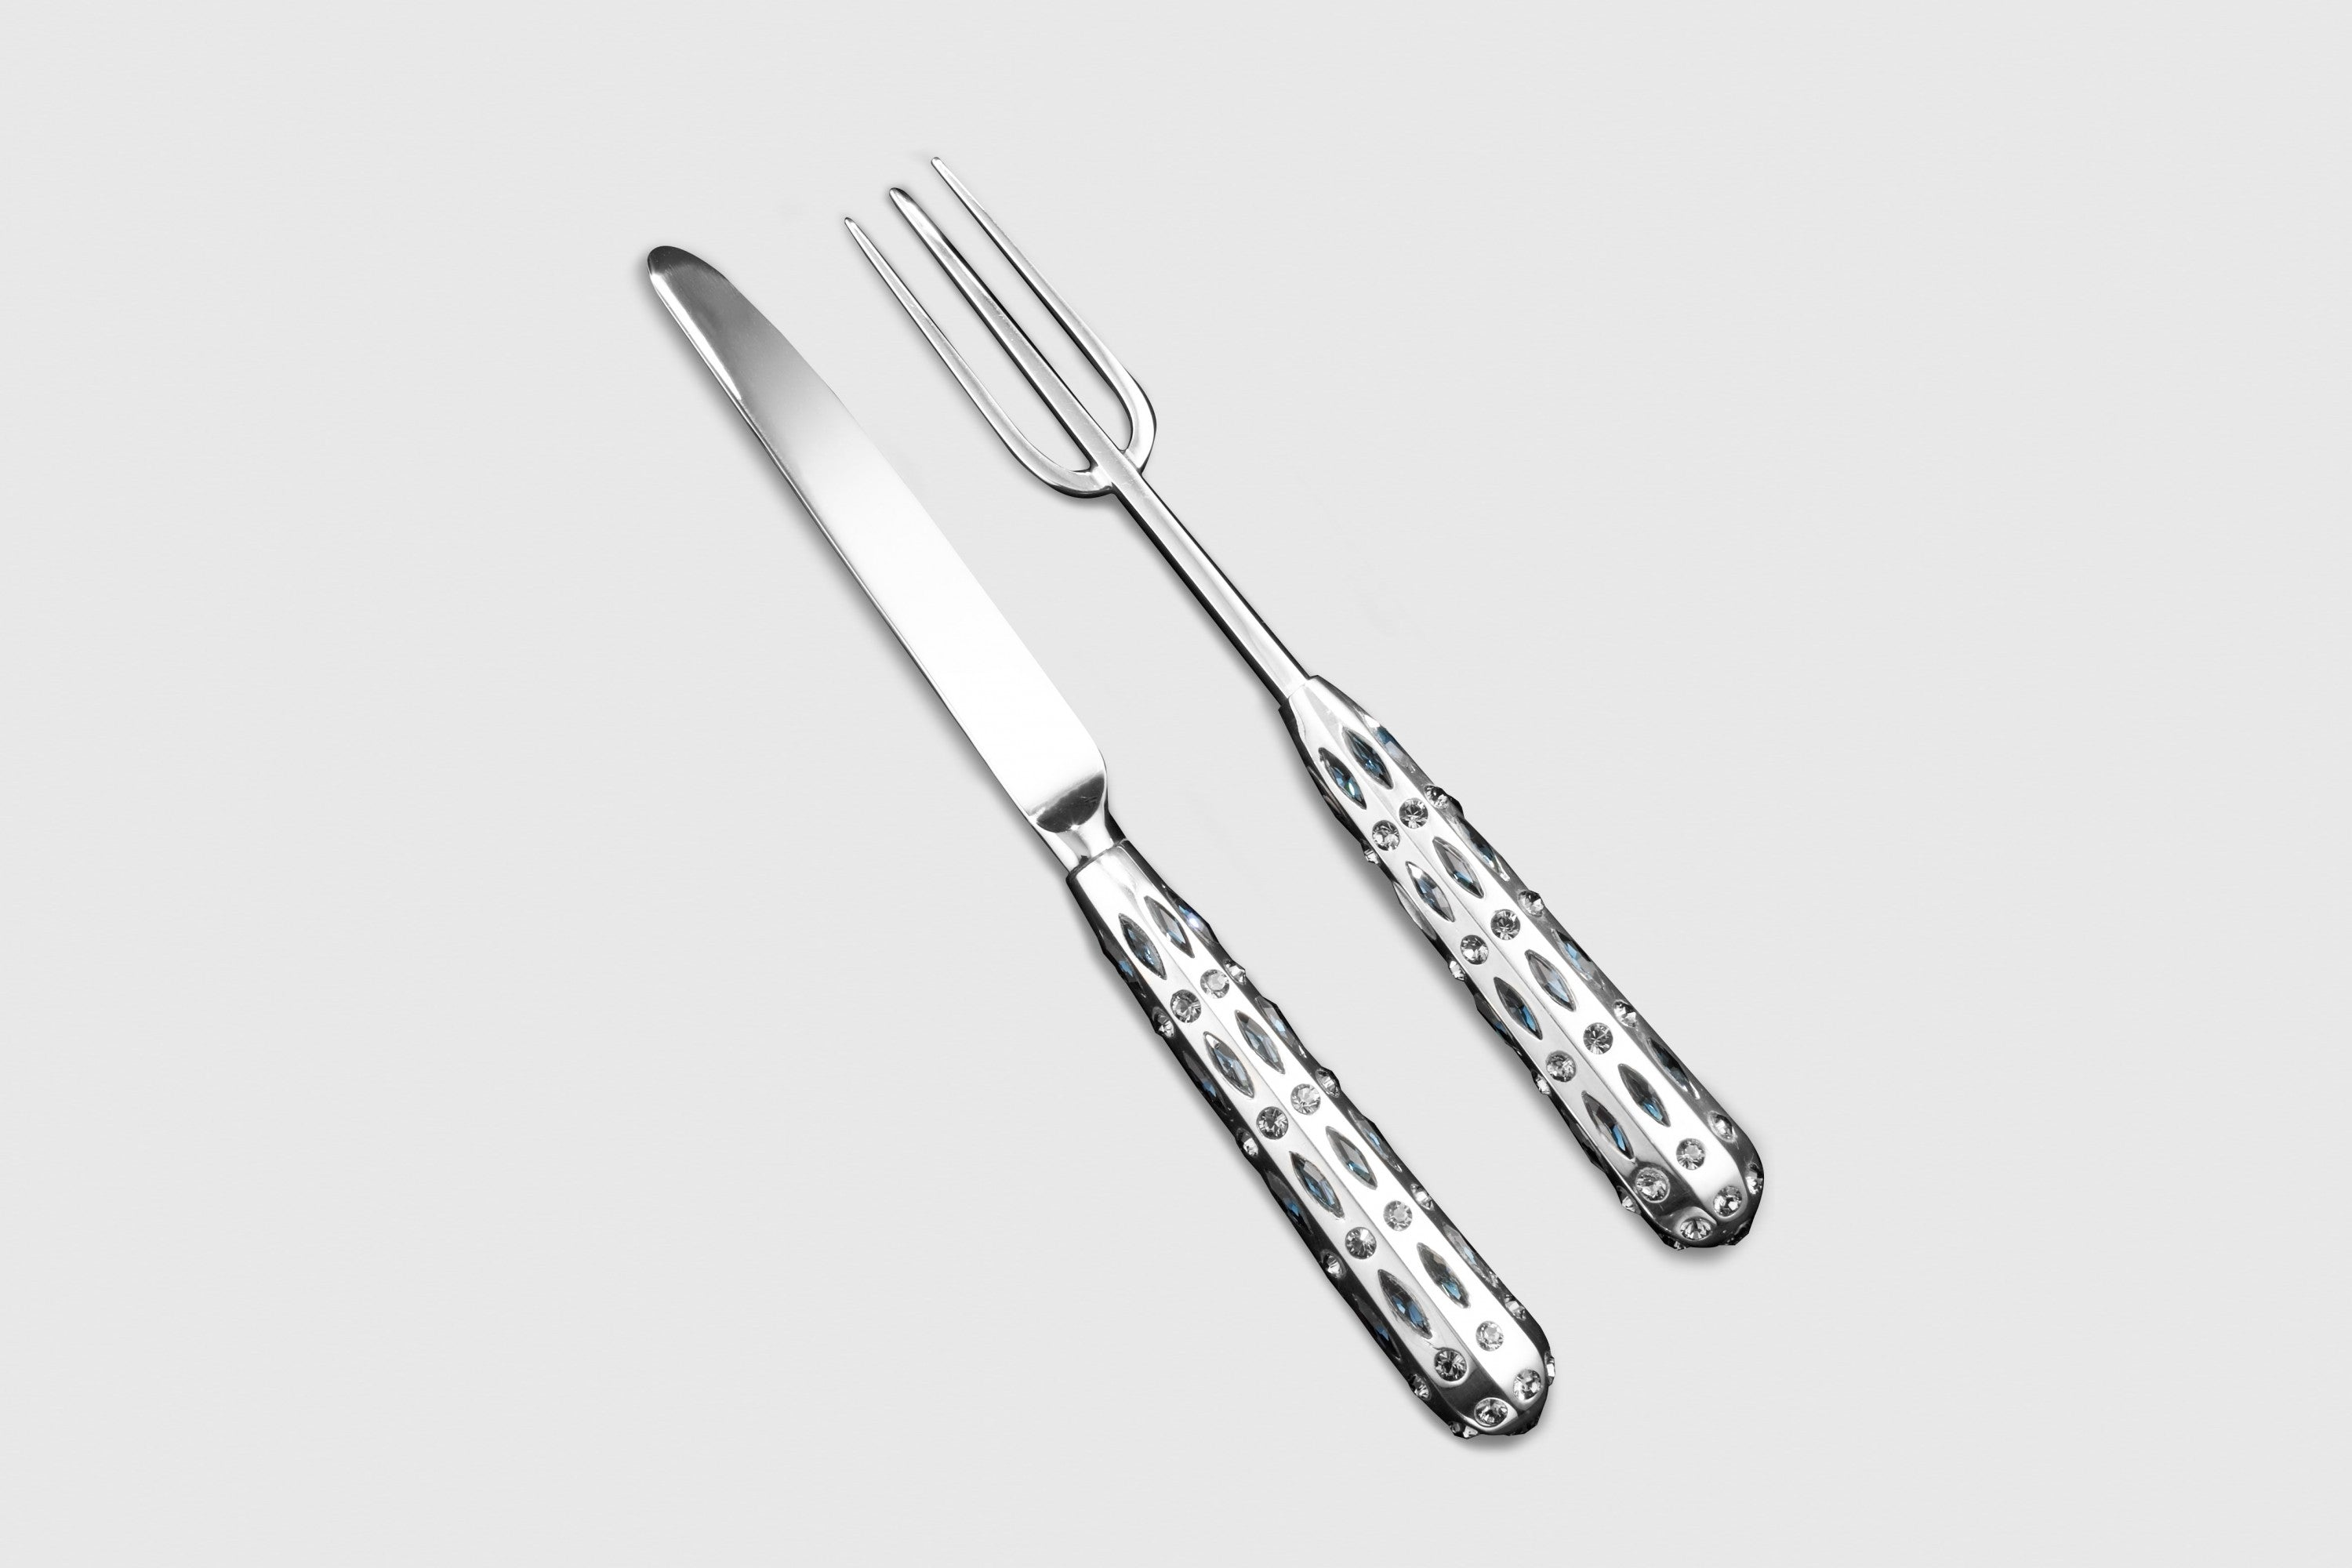 Swarovski Cutlery Design by Bodo Sperlein